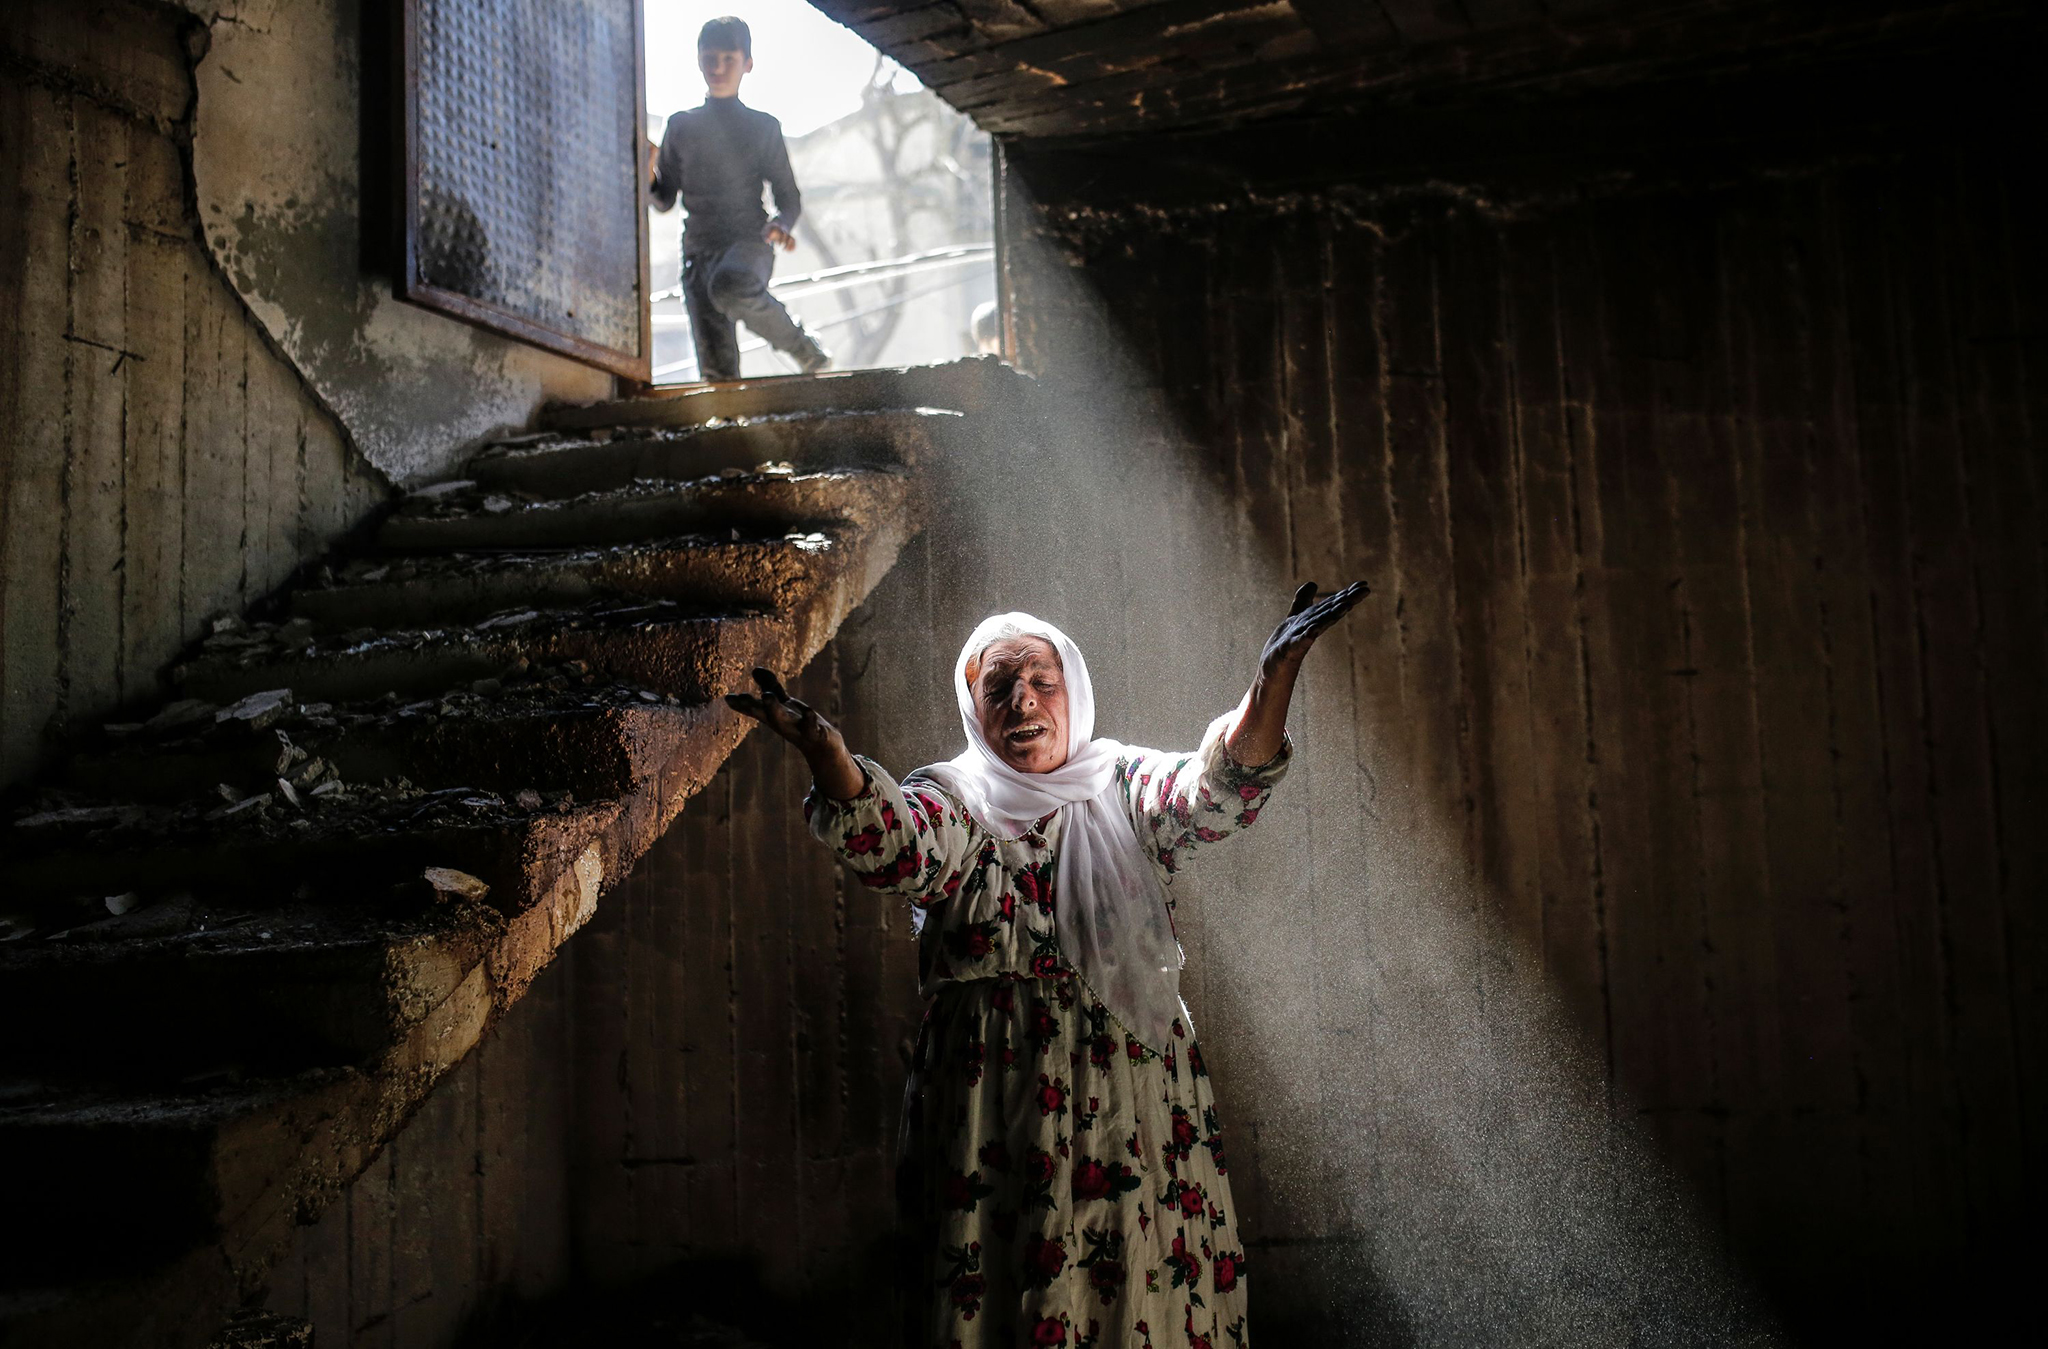 A woman reacts while walking among the ruins of damaged buildings following heavy fighting between government troops and Kurdish fighters in the southeastern Turkey Kurdish town of Cizre, near the border with Syria and Iraq.